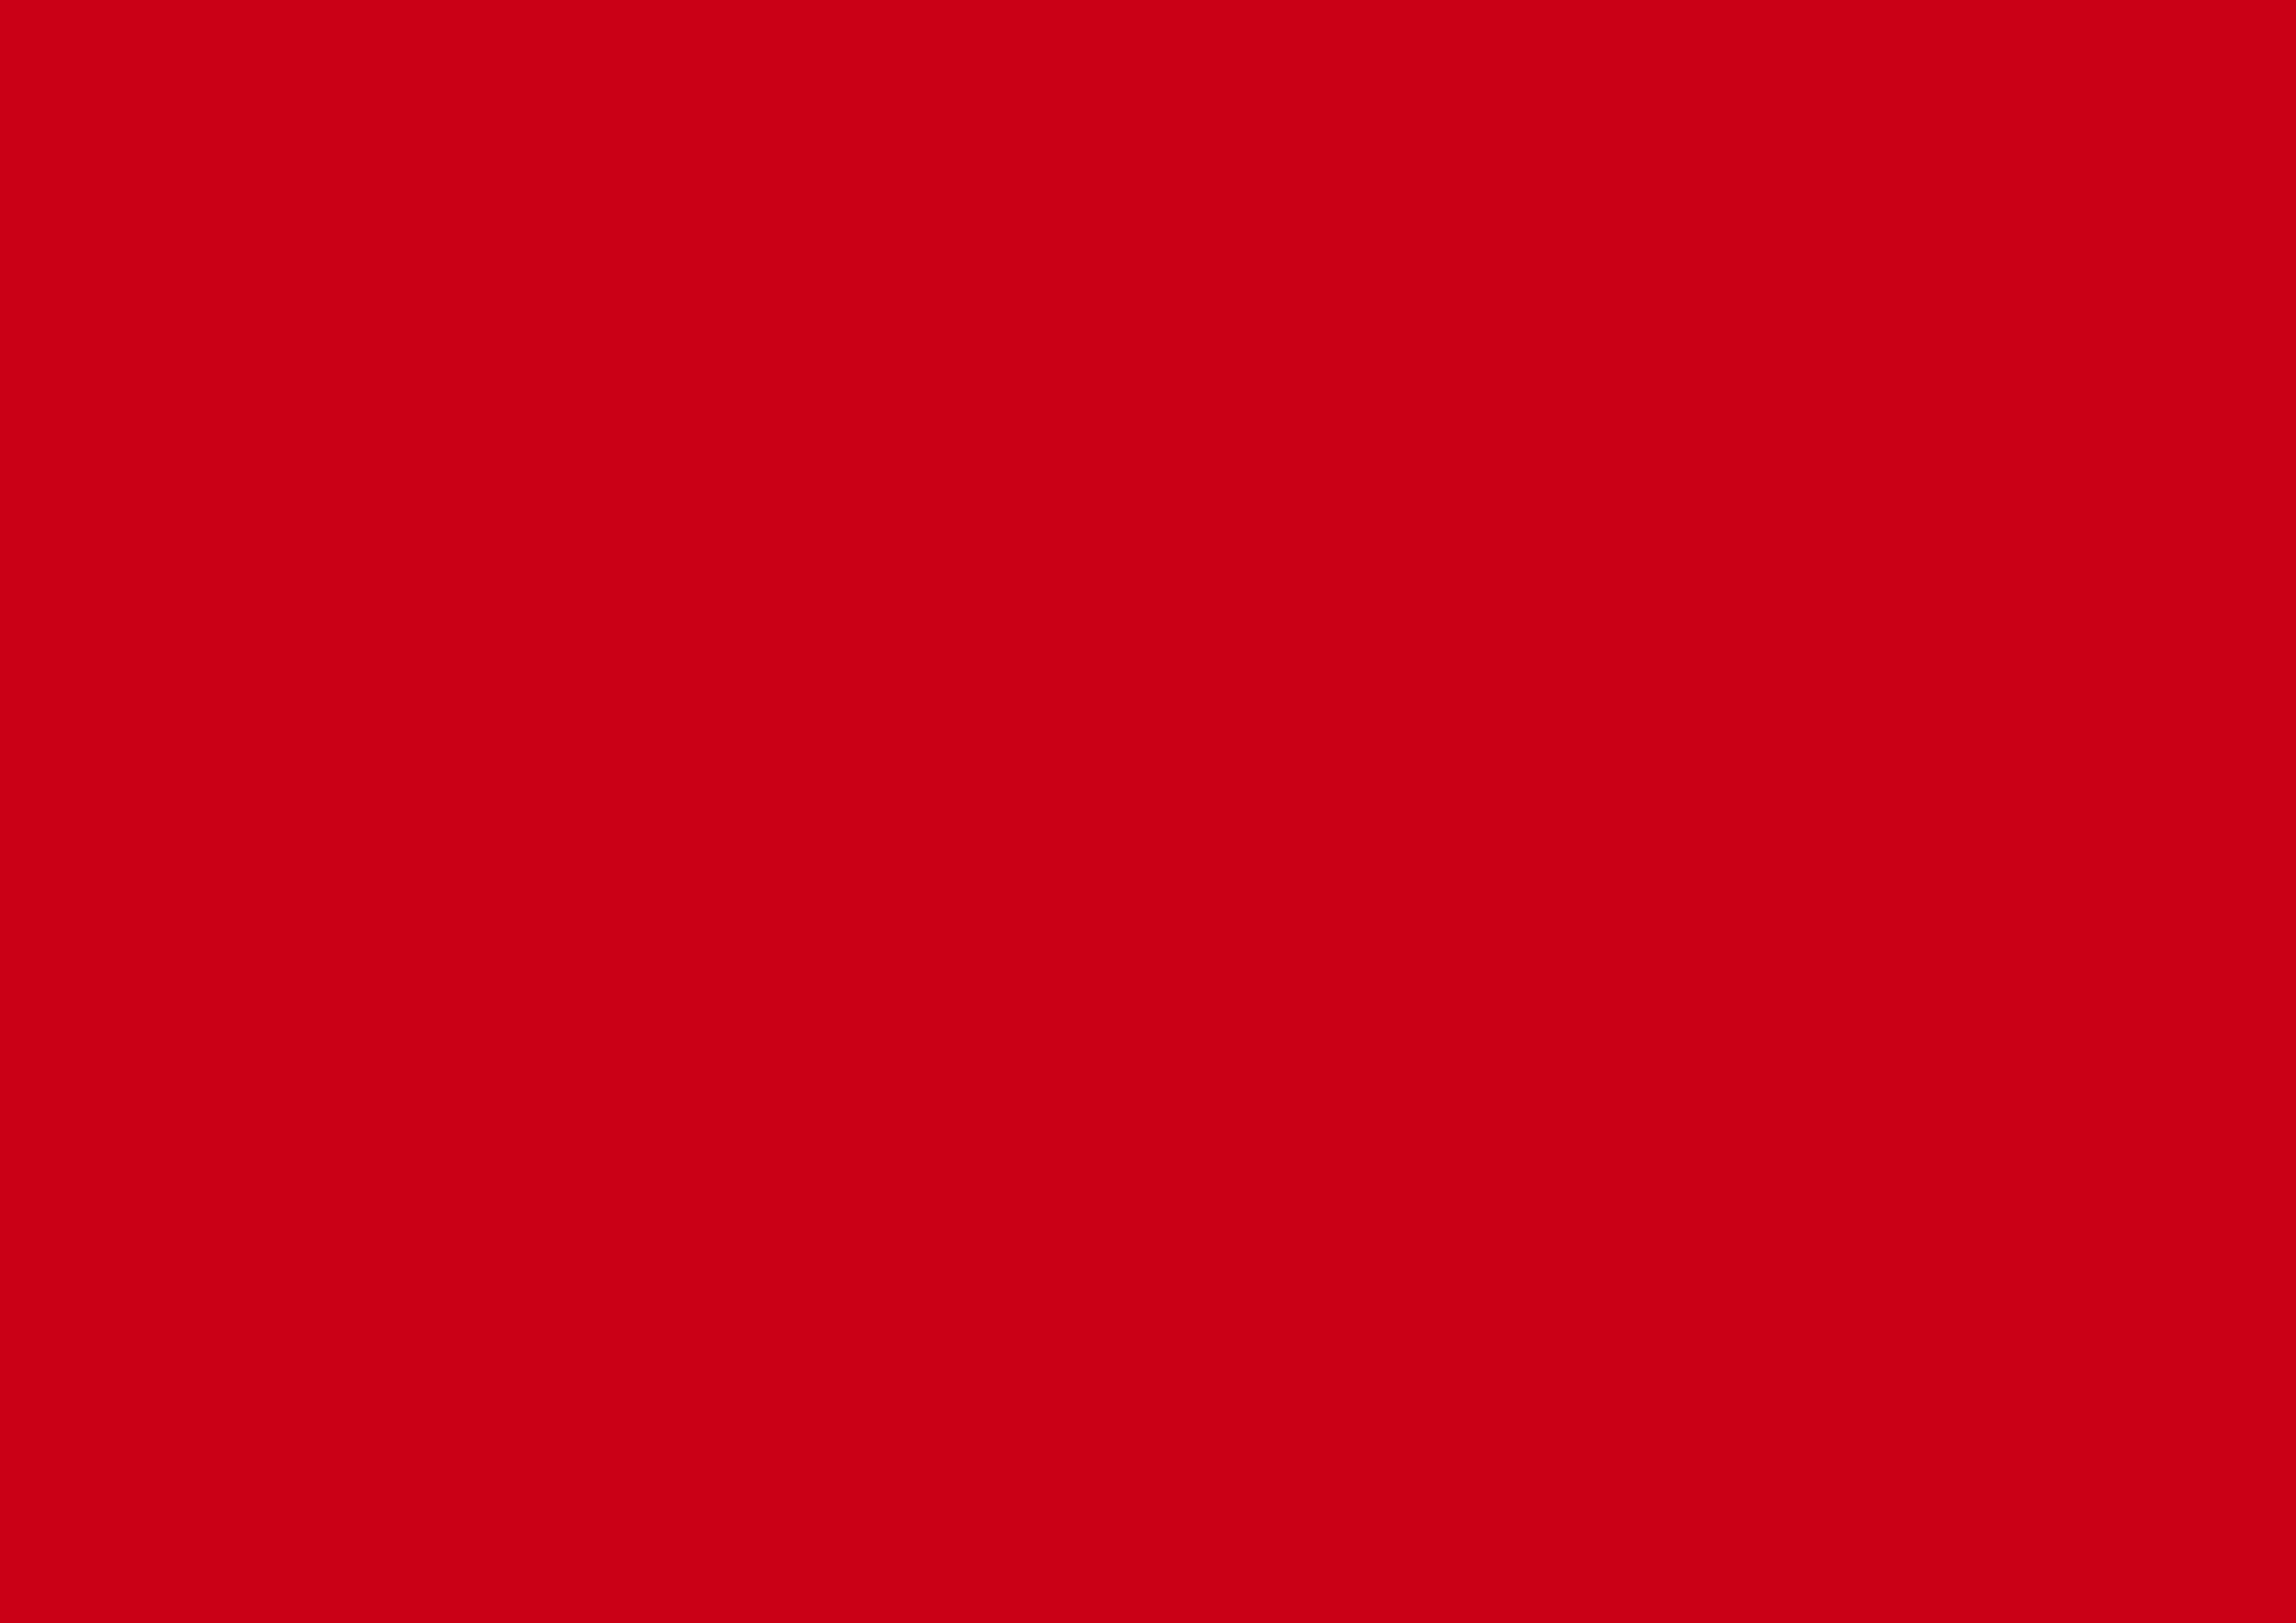 3508x2480 Harvard Crimson Solid Color Background